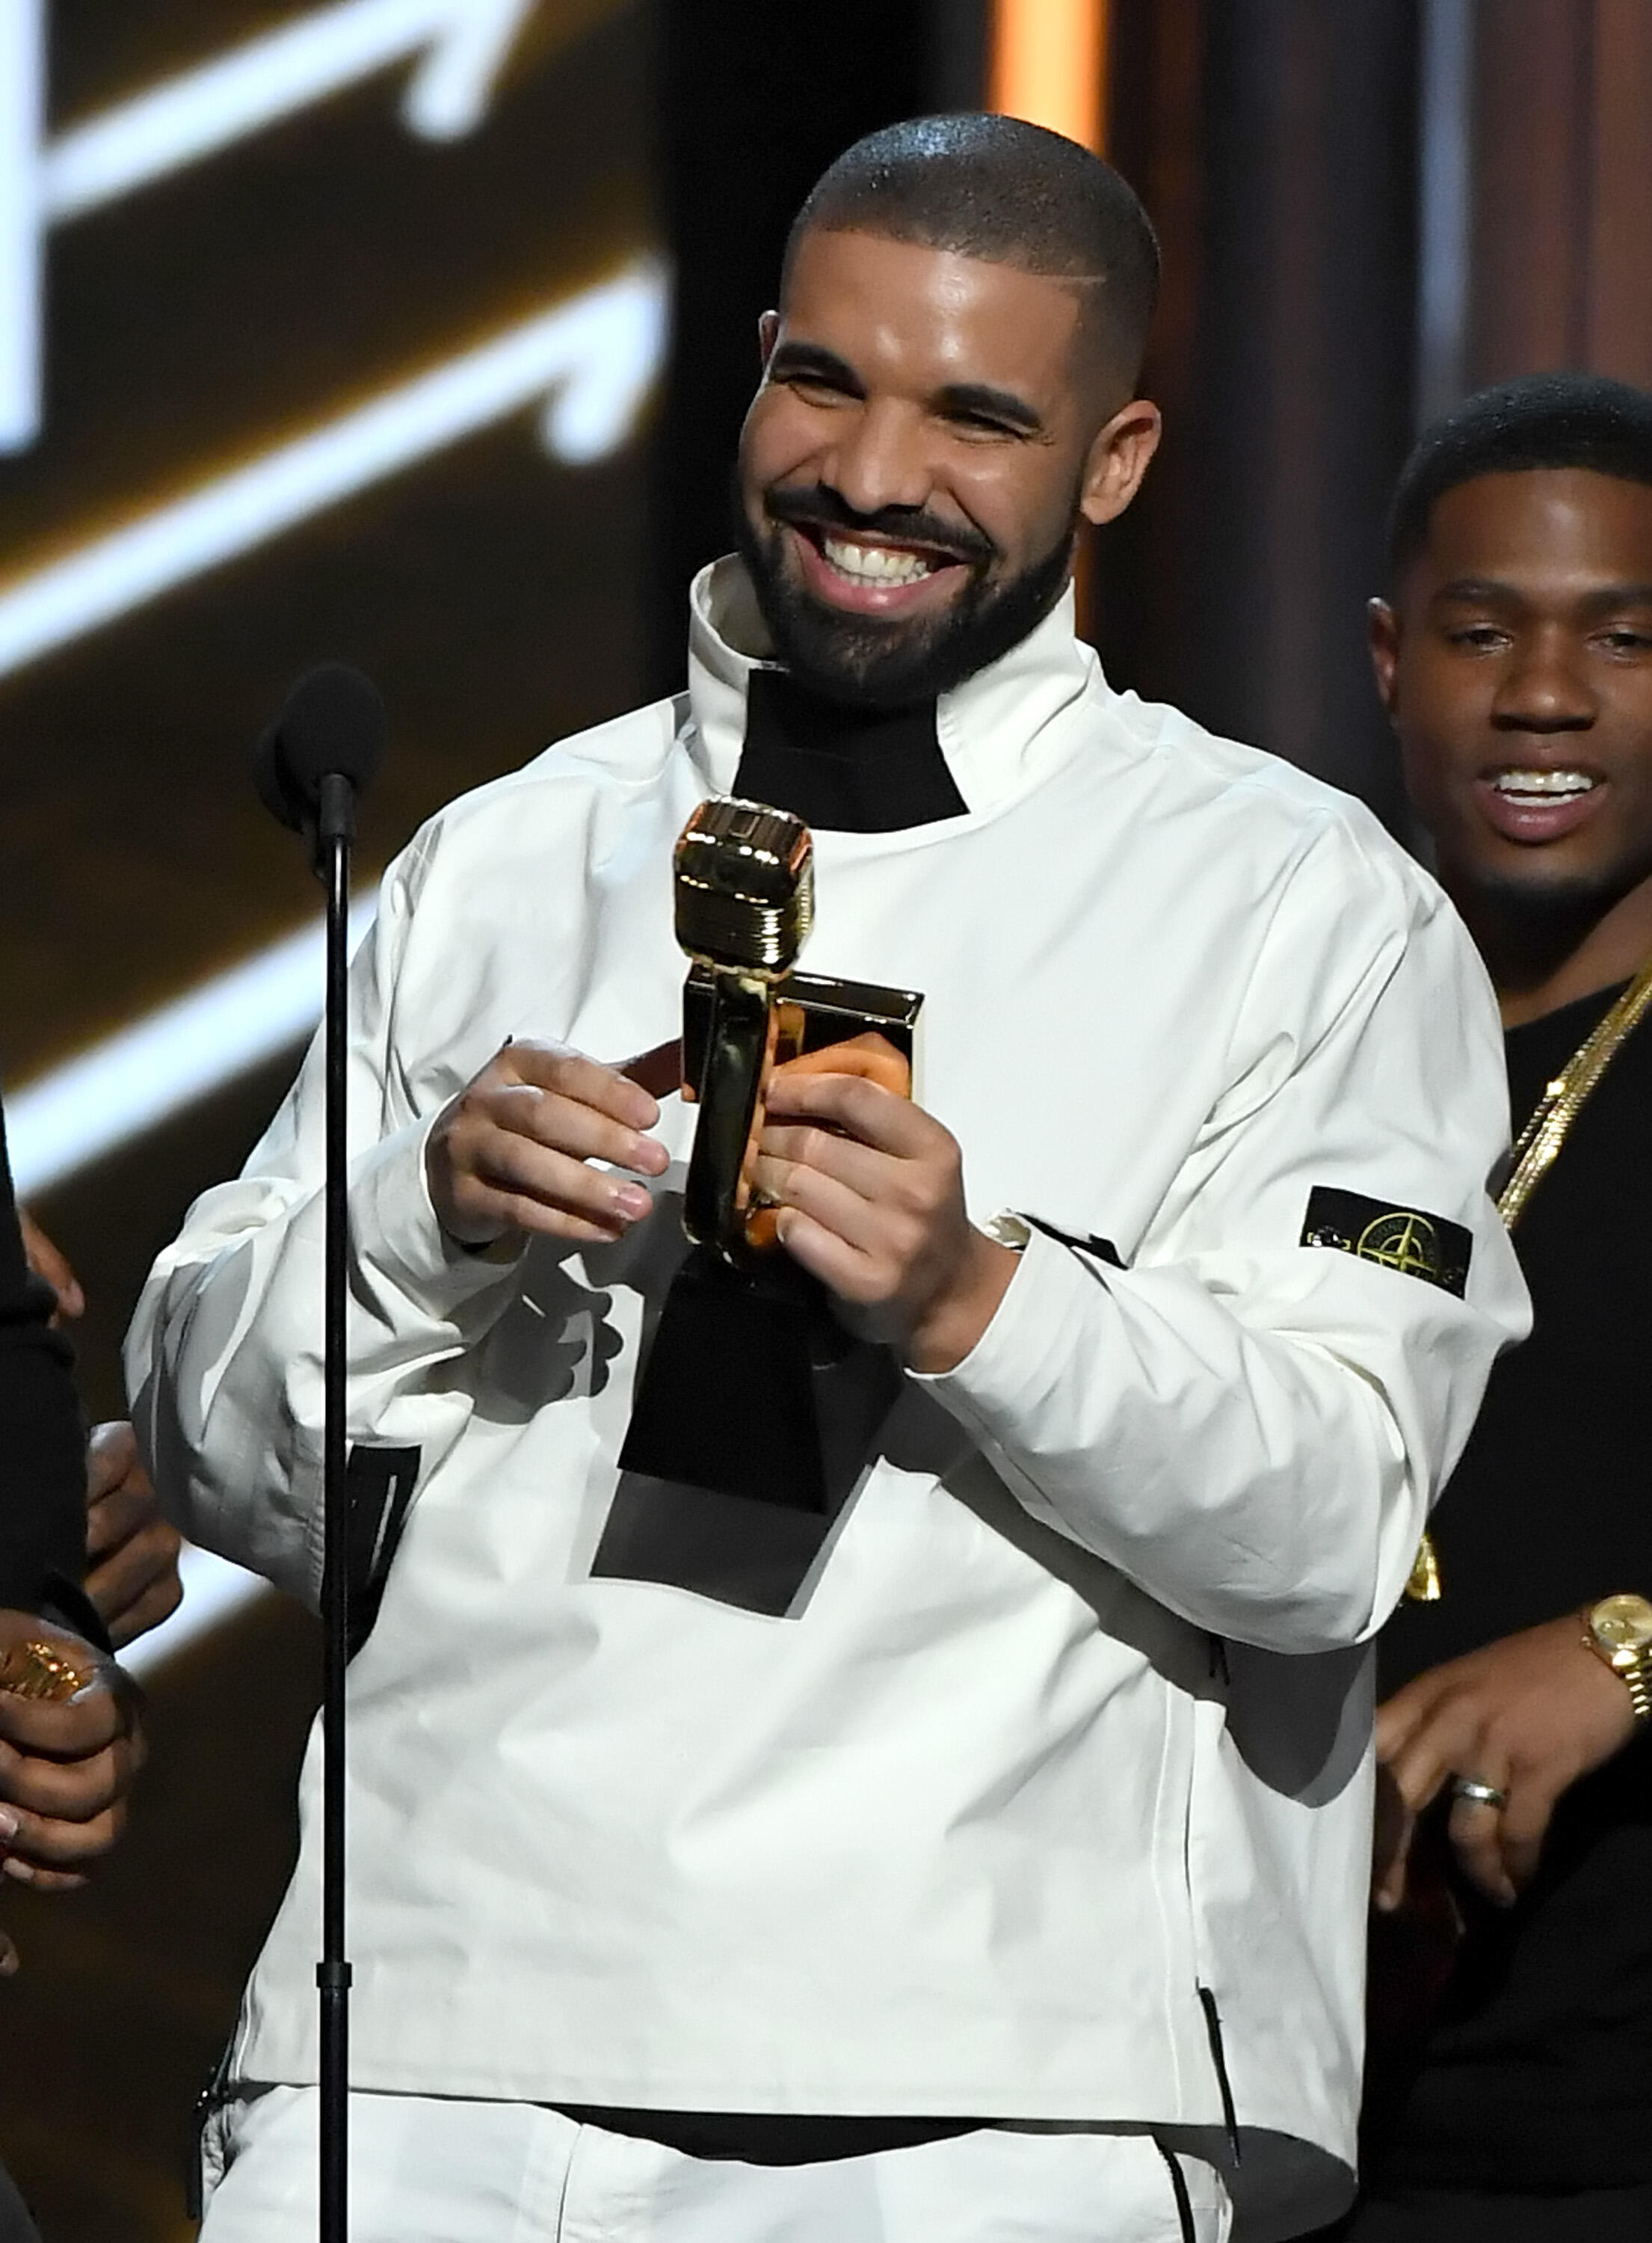 LAS VEGAS, NV - MAY 21:  Rapper Drake accepts the Top Artist award onstage during the 2017 Billboard Music Awards at T-Mobile Arena on May 21, 2017 in Las Vegas, Nevada.  (Photo by Ethan Miller/Getty Images)